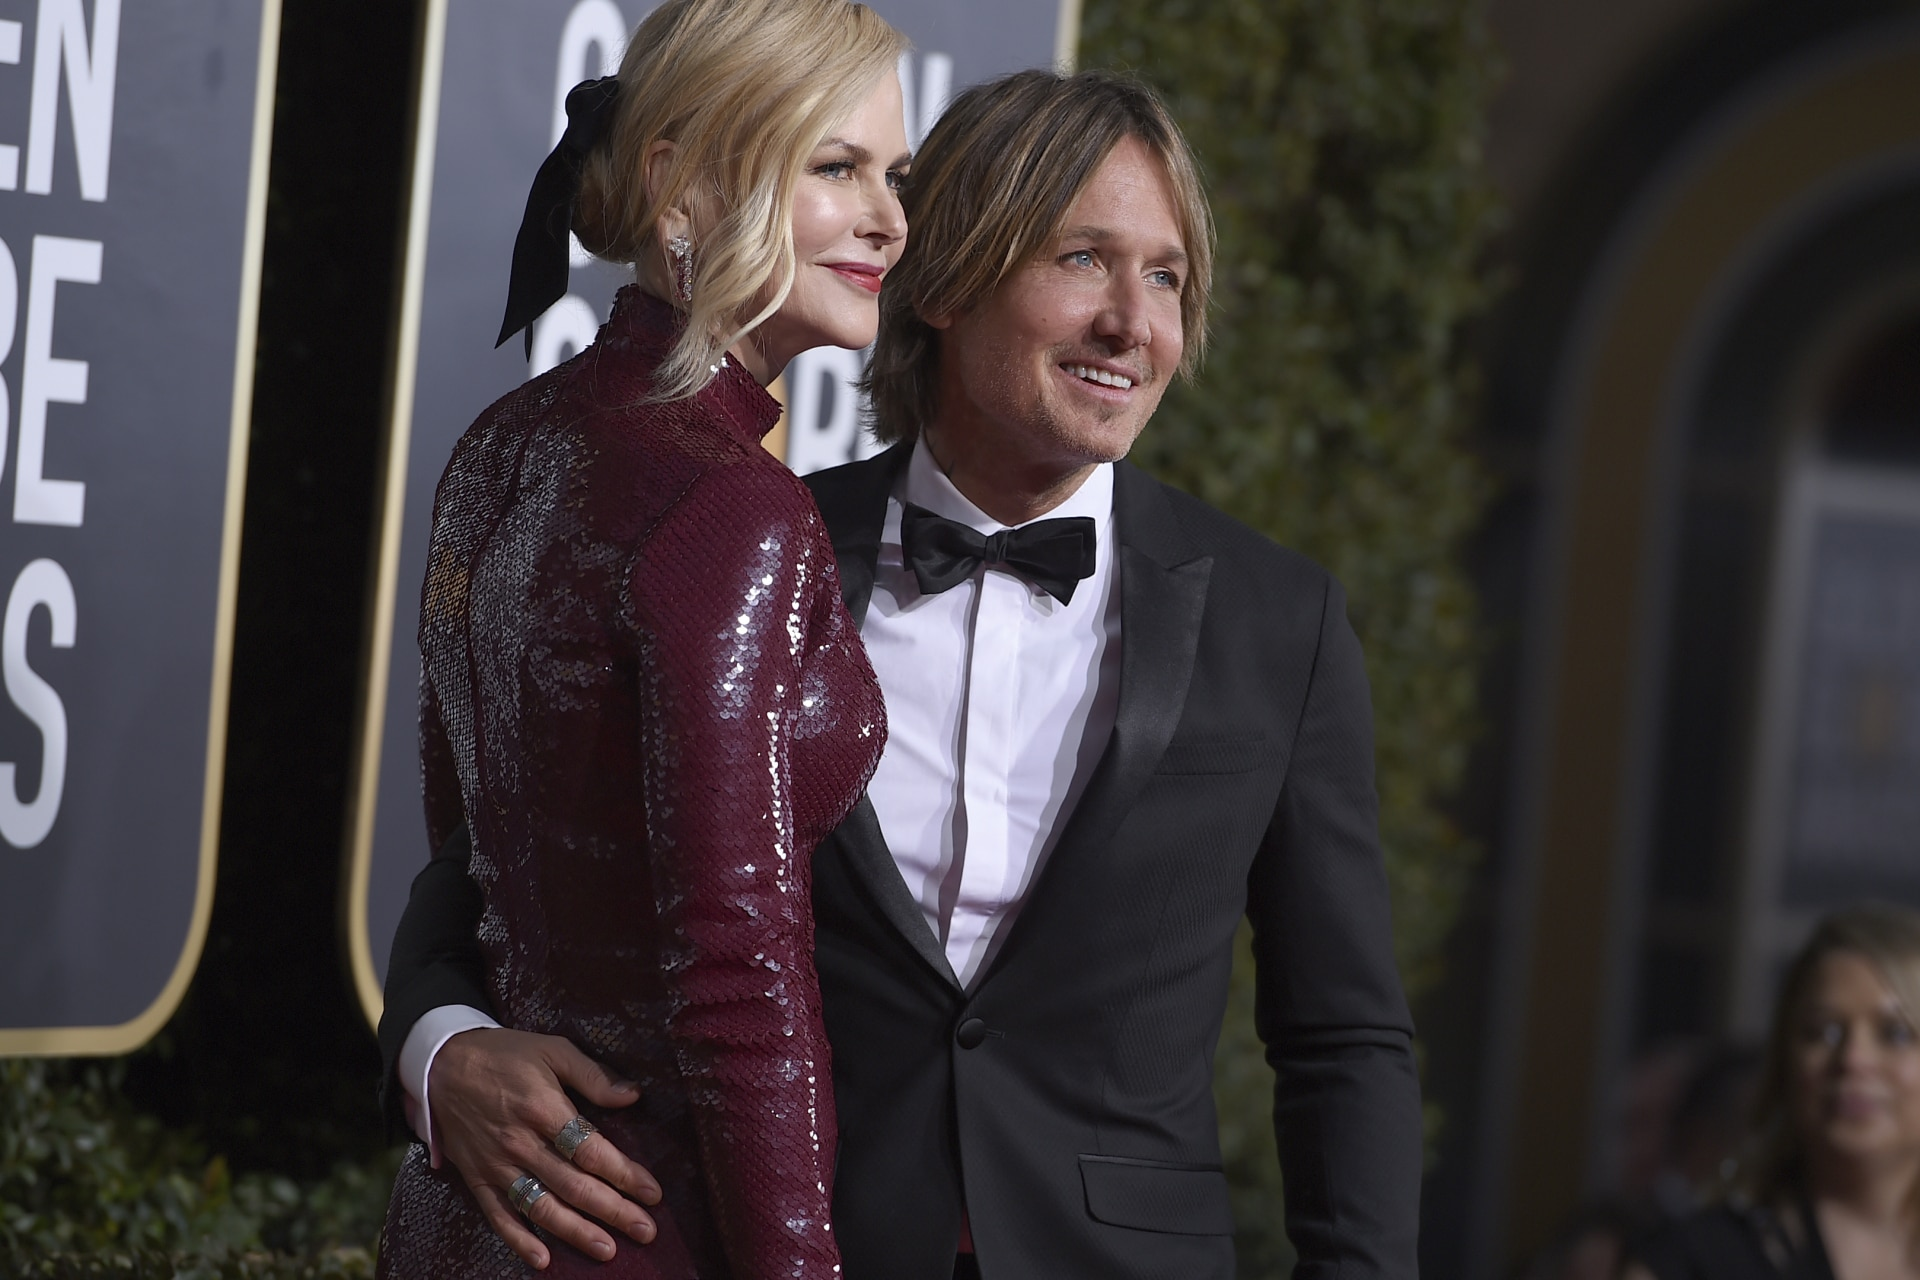 Nicole Kidman reveals the romantic gesture that convinced her to marry Keith Urban